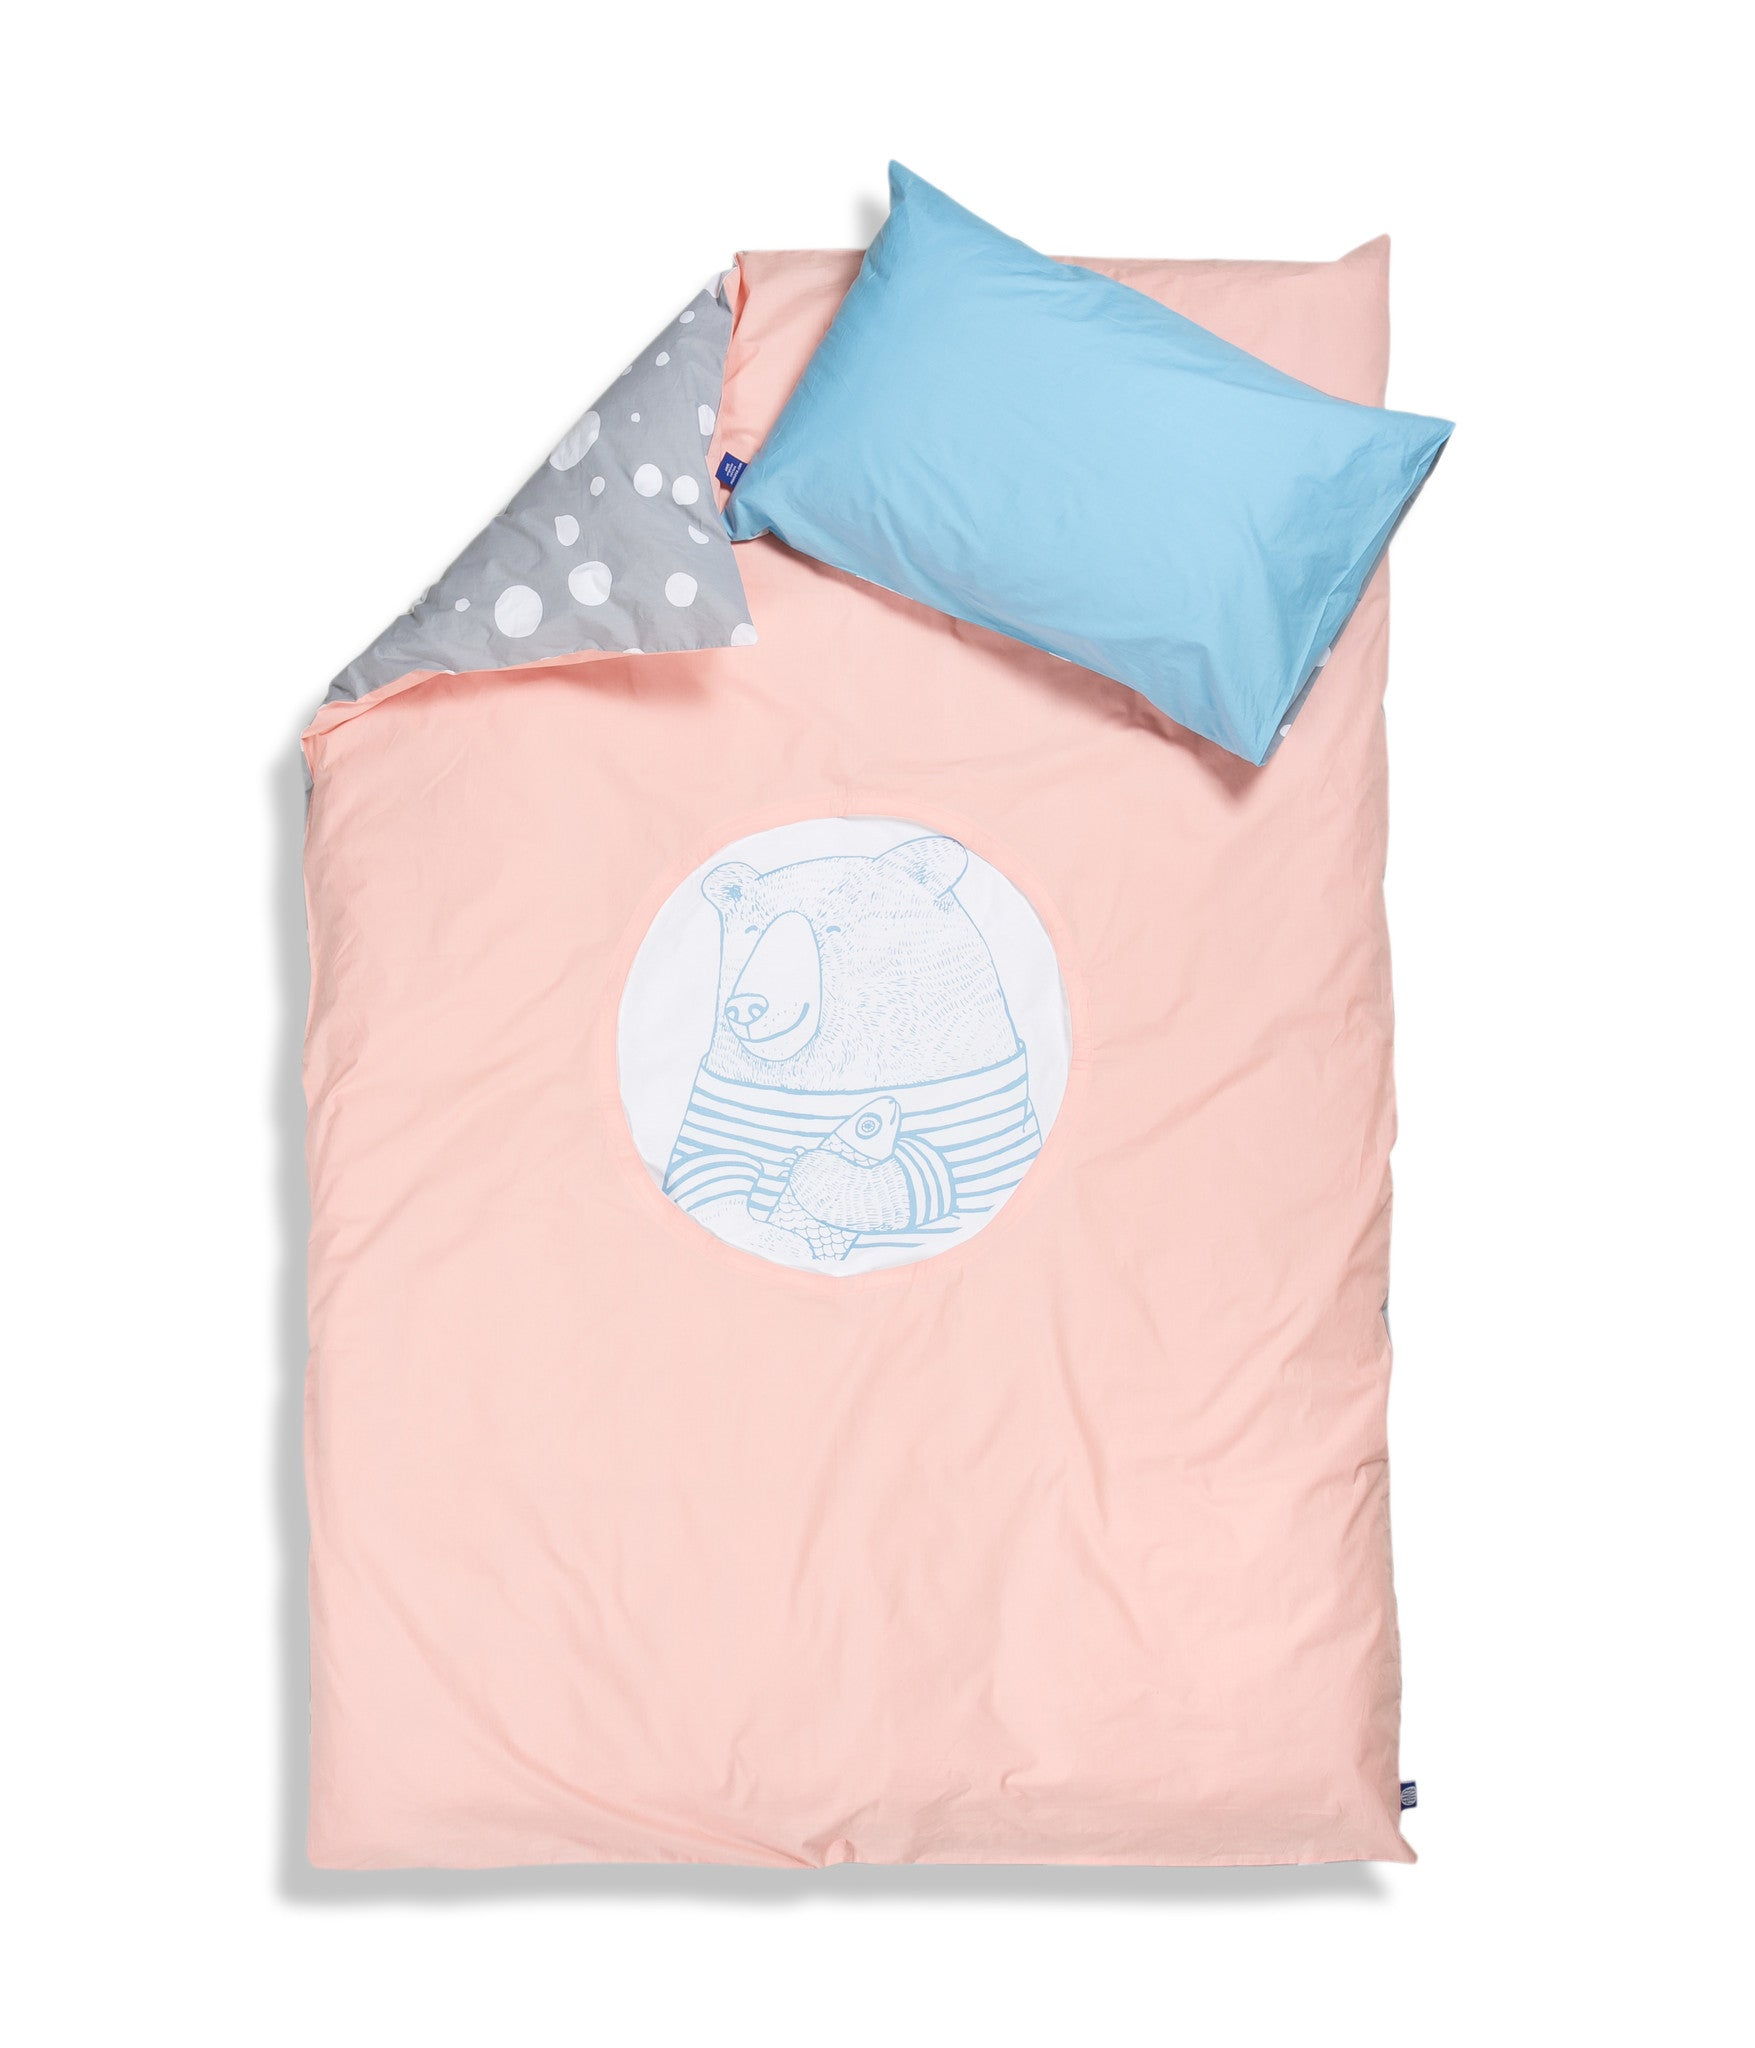 Organic cotton single bed set. Kids bedding. Blue pillow case and pink duvet cover with bear. Dotted pattern bed linen. Customised bedding.